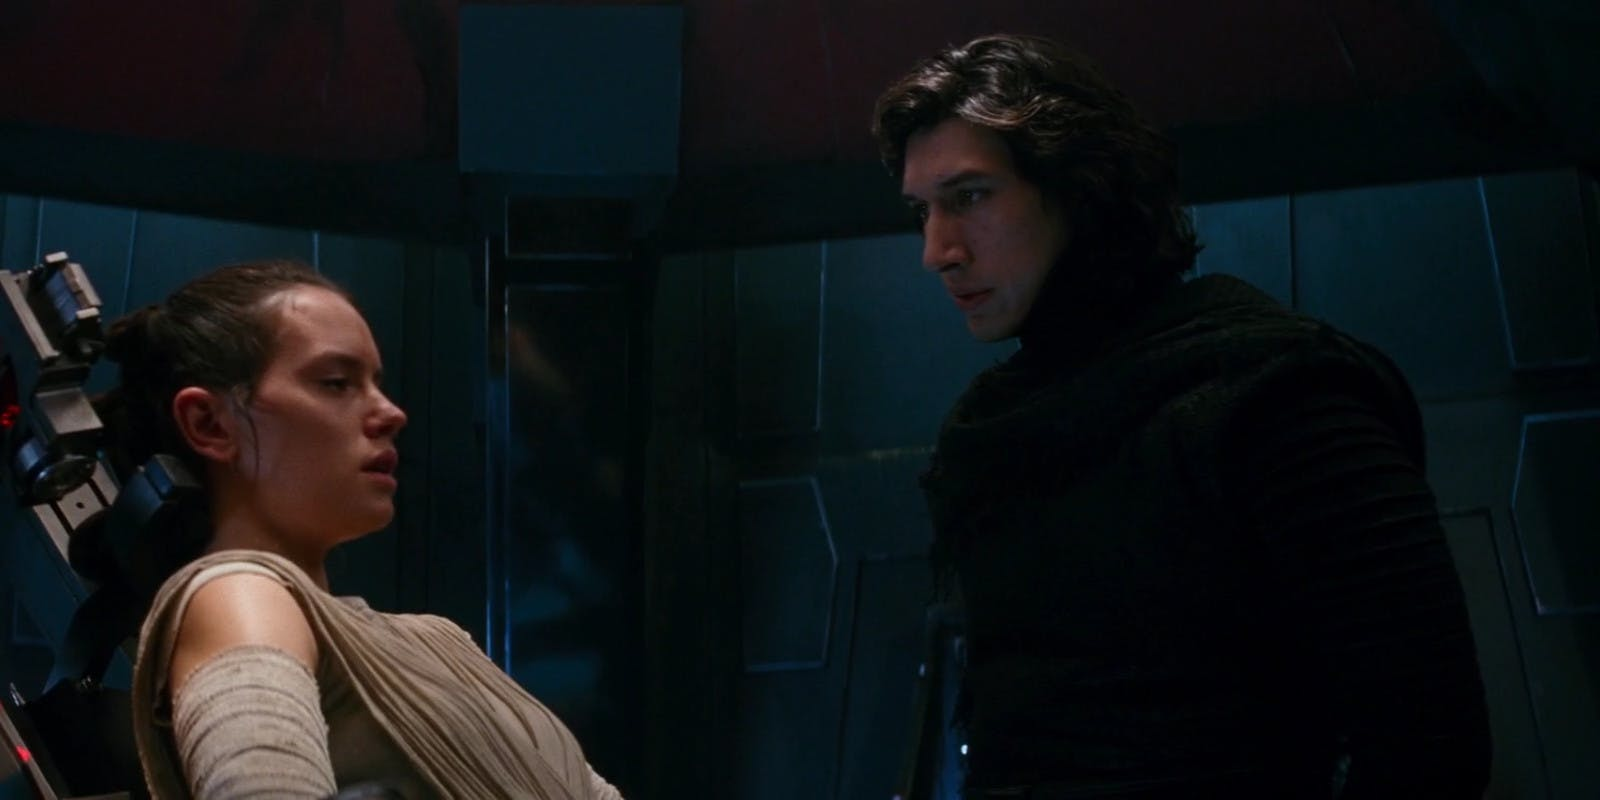 Kylo interrogates Rey in Star Wars: The Force Awakens